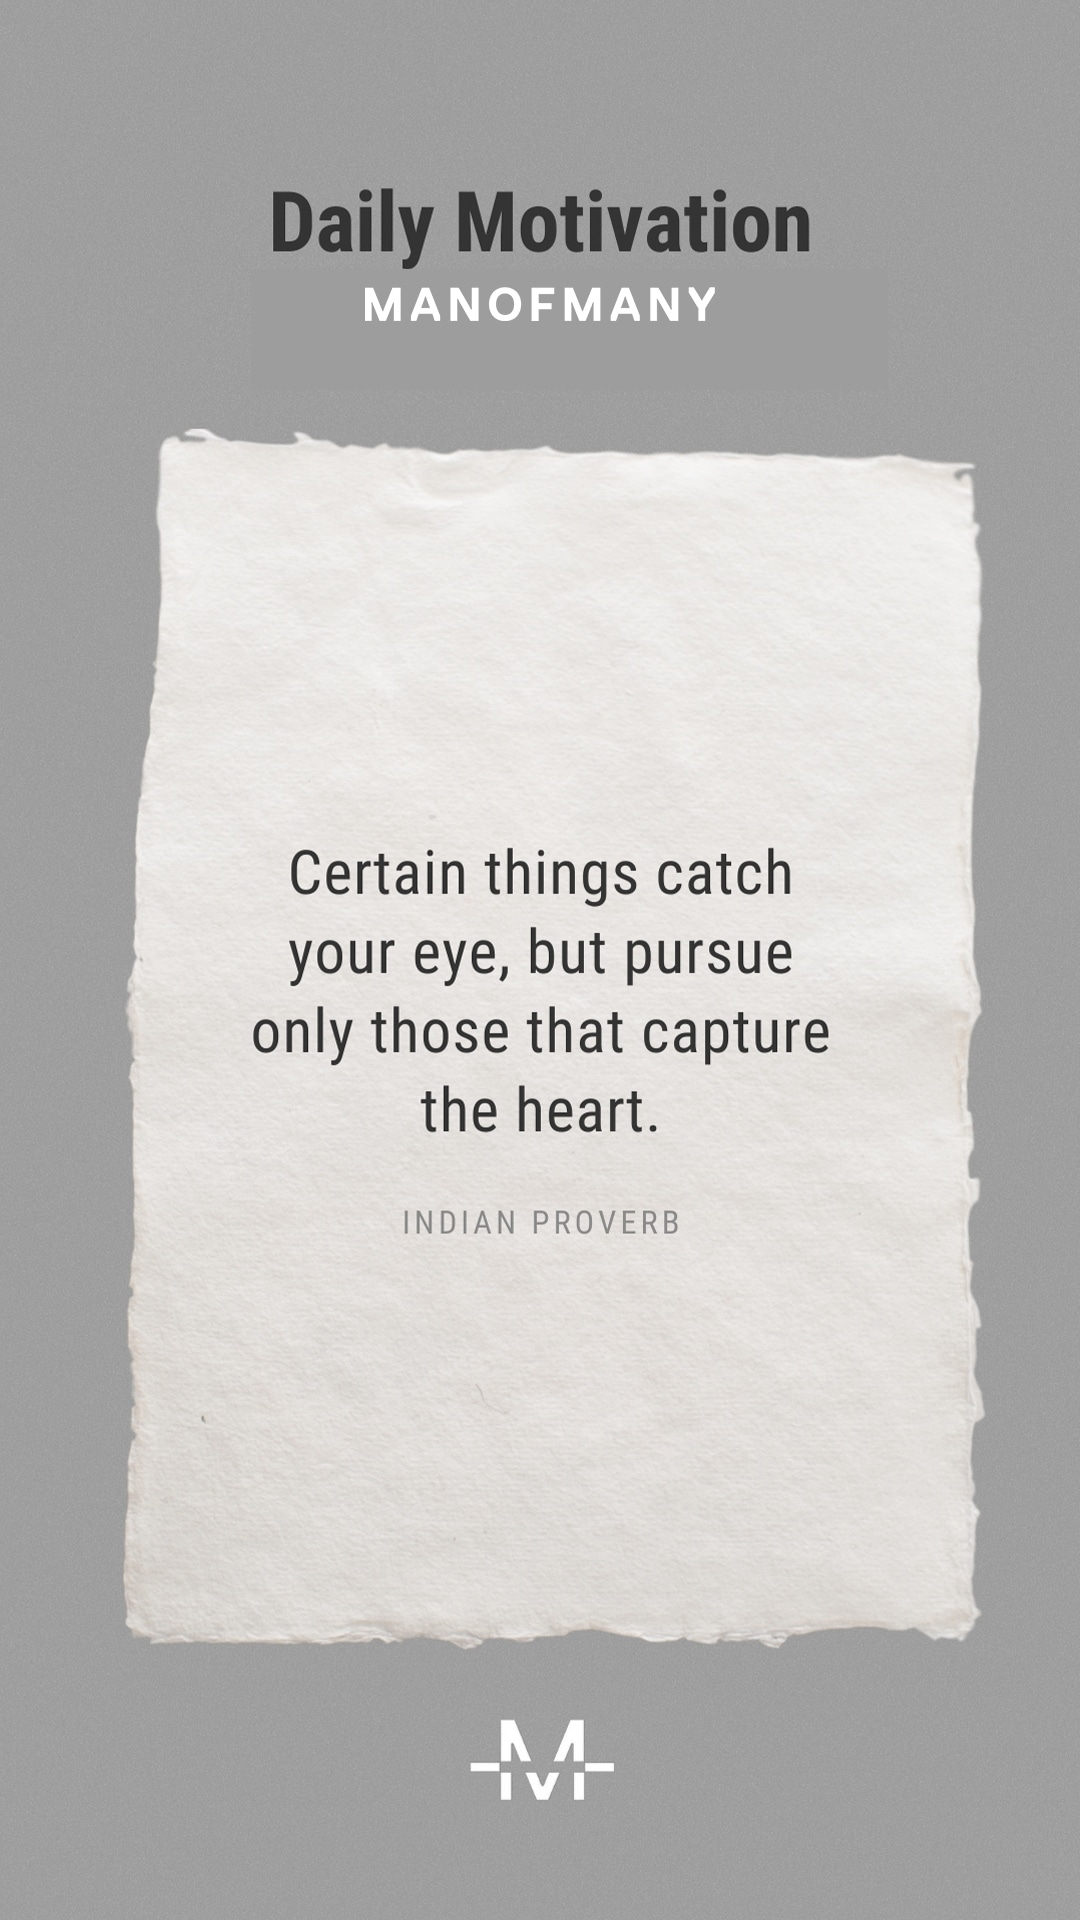 Certain things catch your eye, but pursue only those that capture the heart. – Ancient Indian Proverb quote